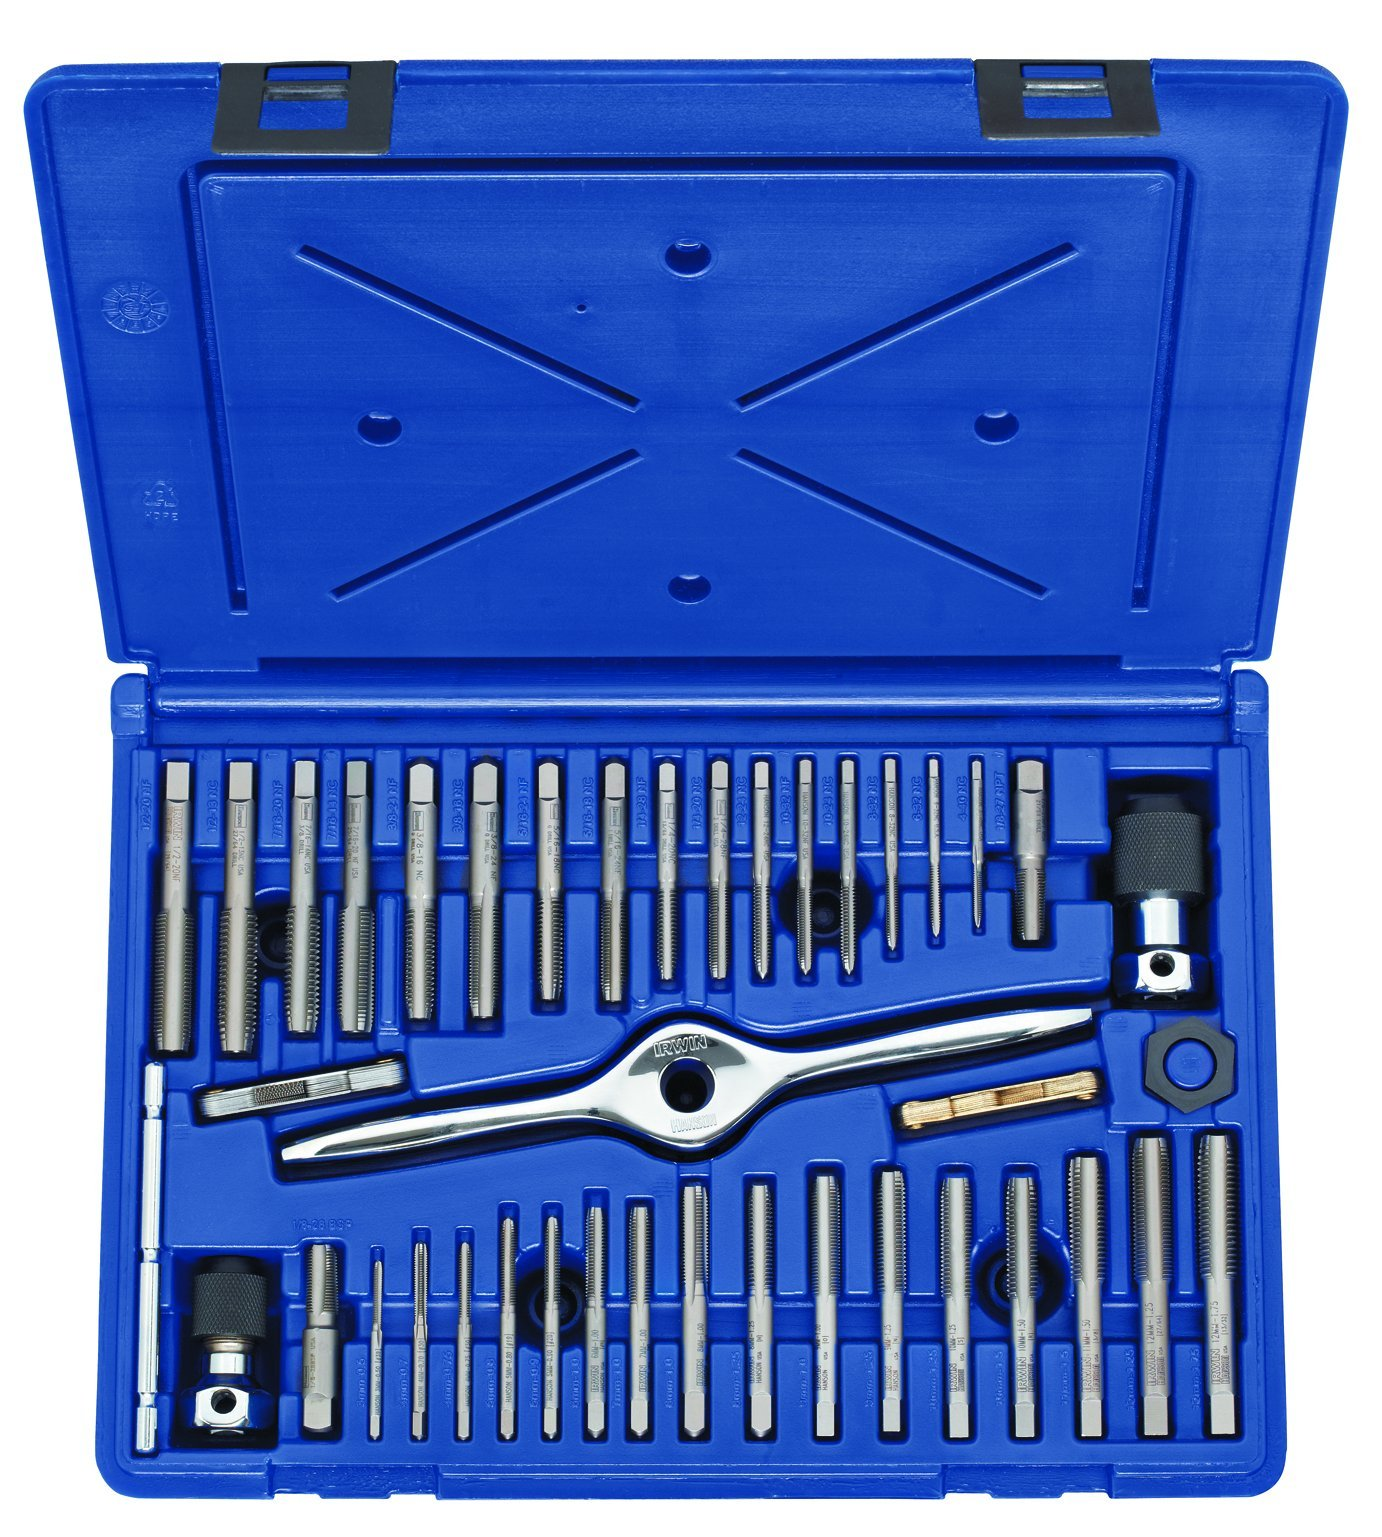 Irwin Tools 1840234 Performance Threading System Plug Tap Set -Machine Screw/Fractional/Metric, 41-Piece by Irwin Tools